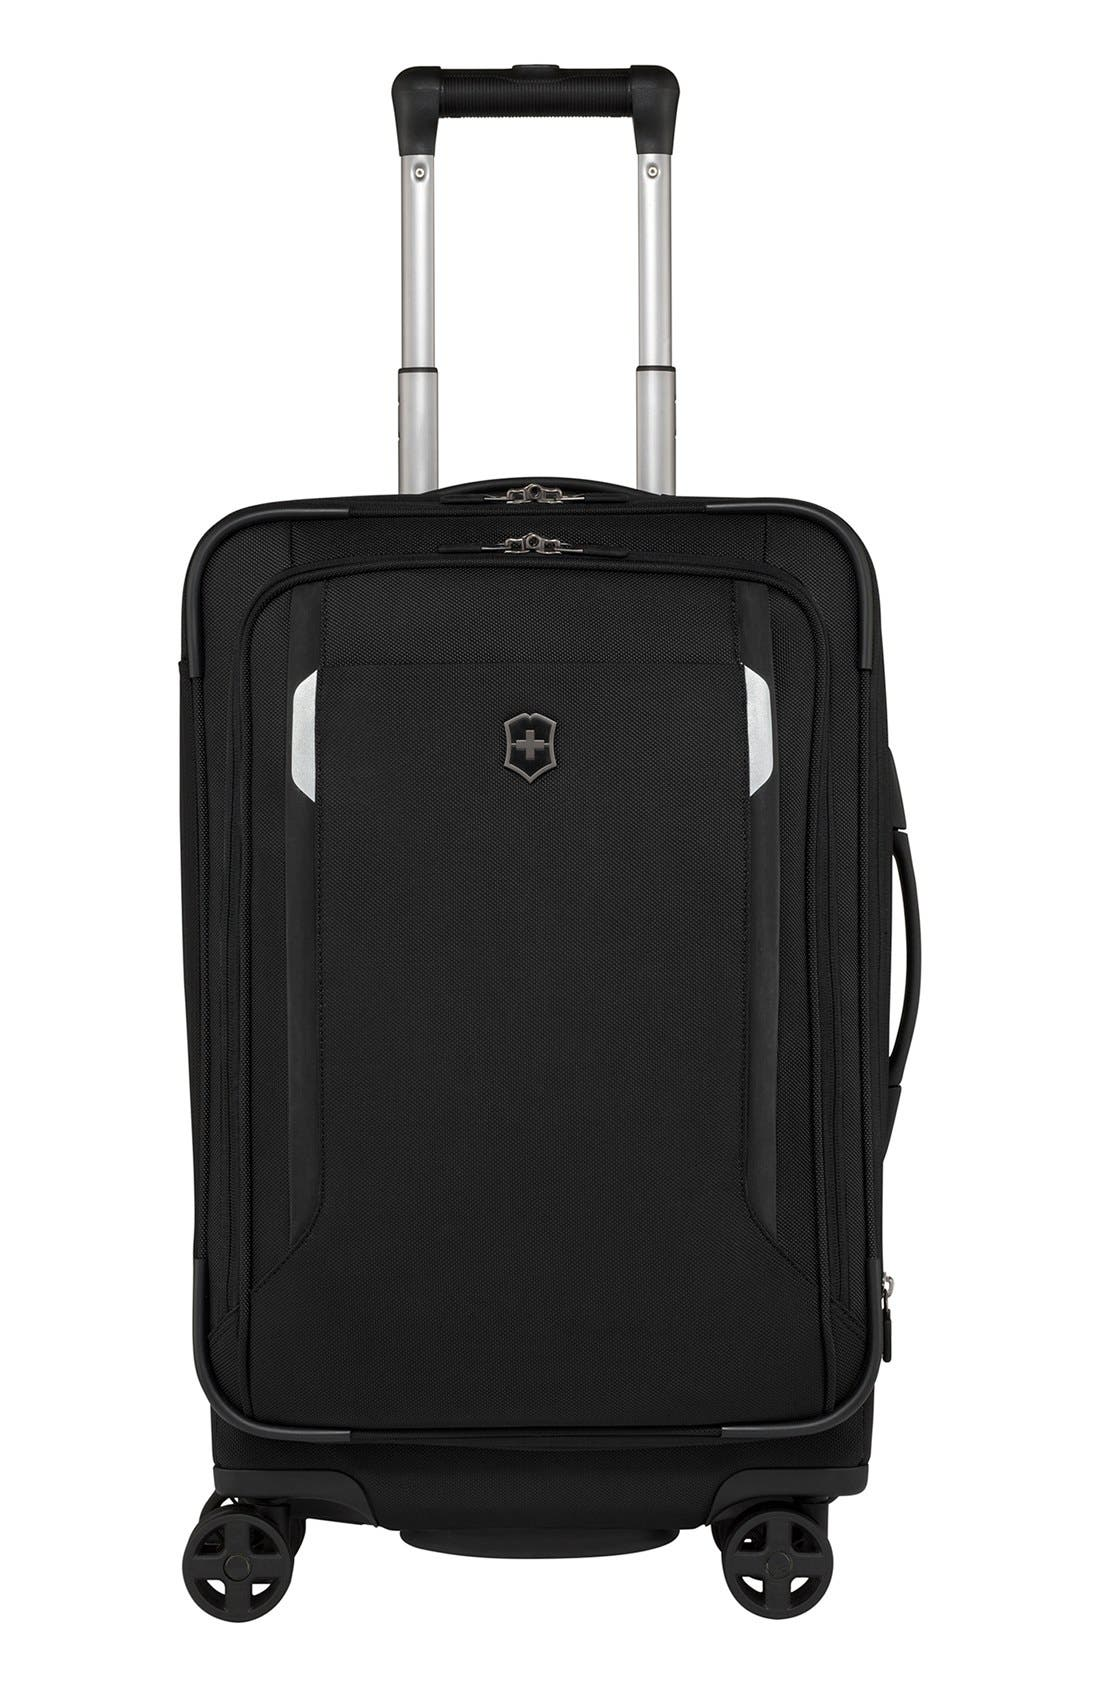 WT 5.0 Dual Caster Wheeled 22-Inch Carry-On,                             Main thumbnail 1, color,                             Black